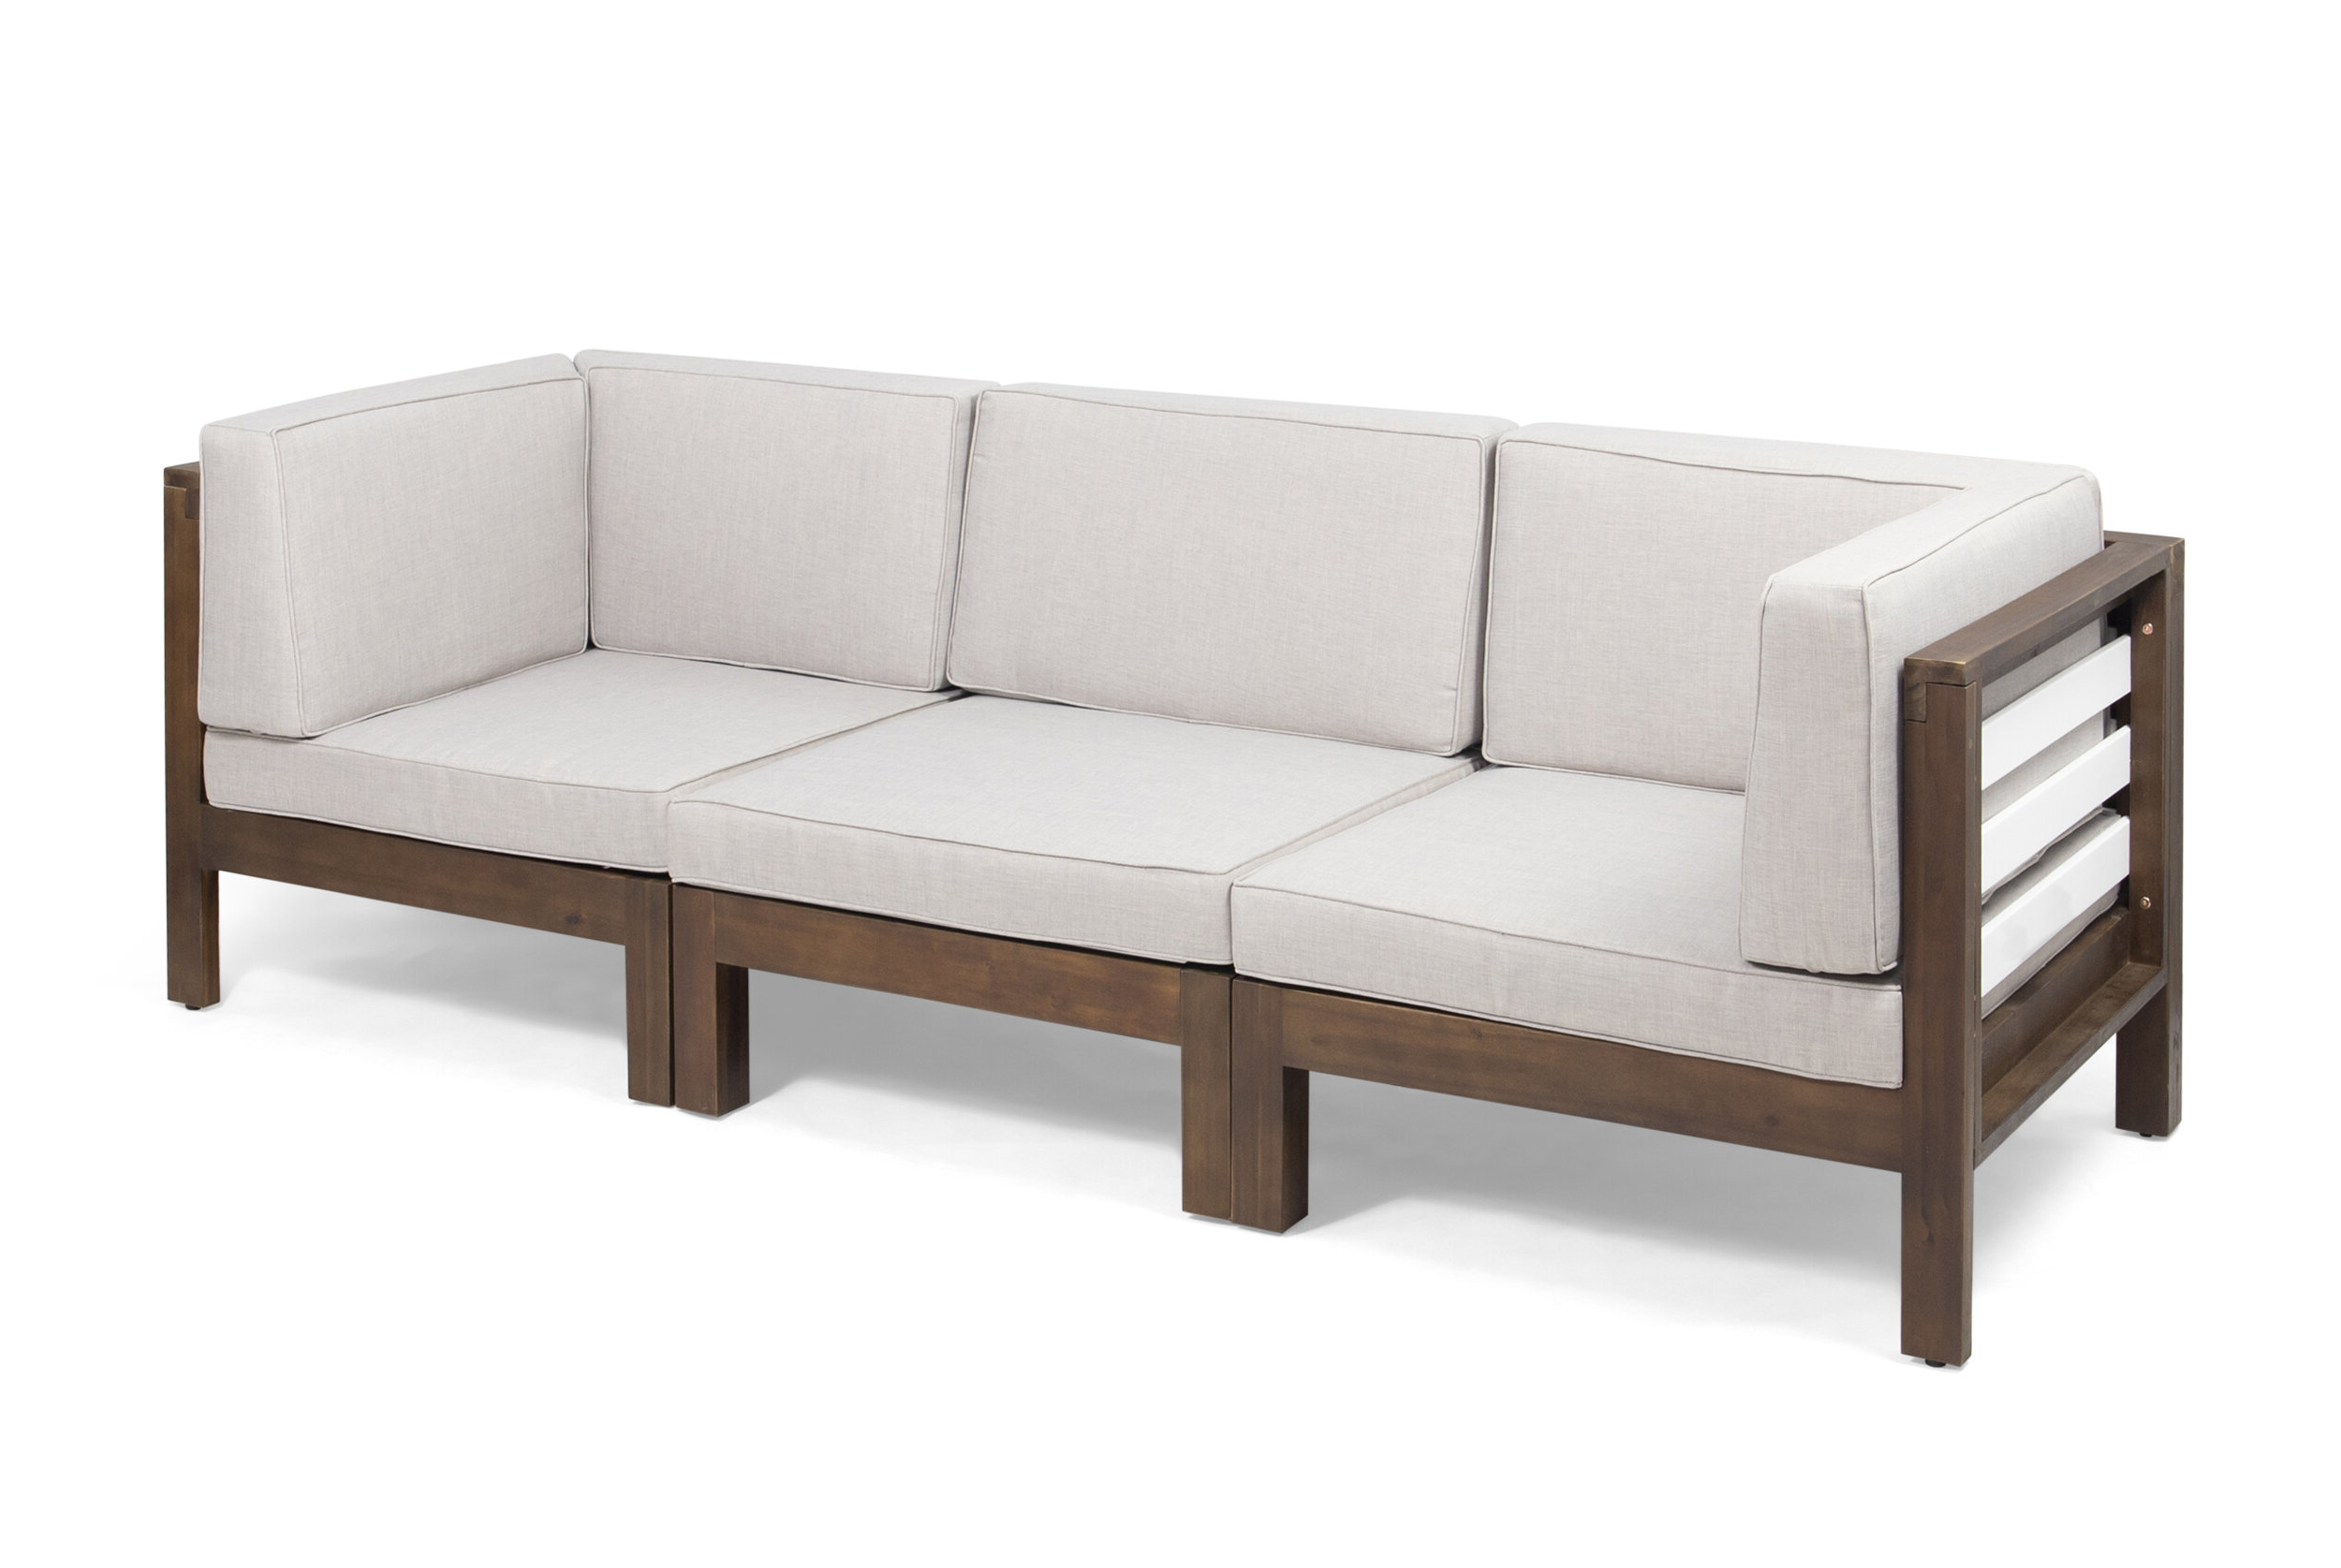 Parnell Outdoor Modular Patio Sofa With Cushions Throughout Preferred Seaham Patio Sectionals With Cushions (View 9 of 20)